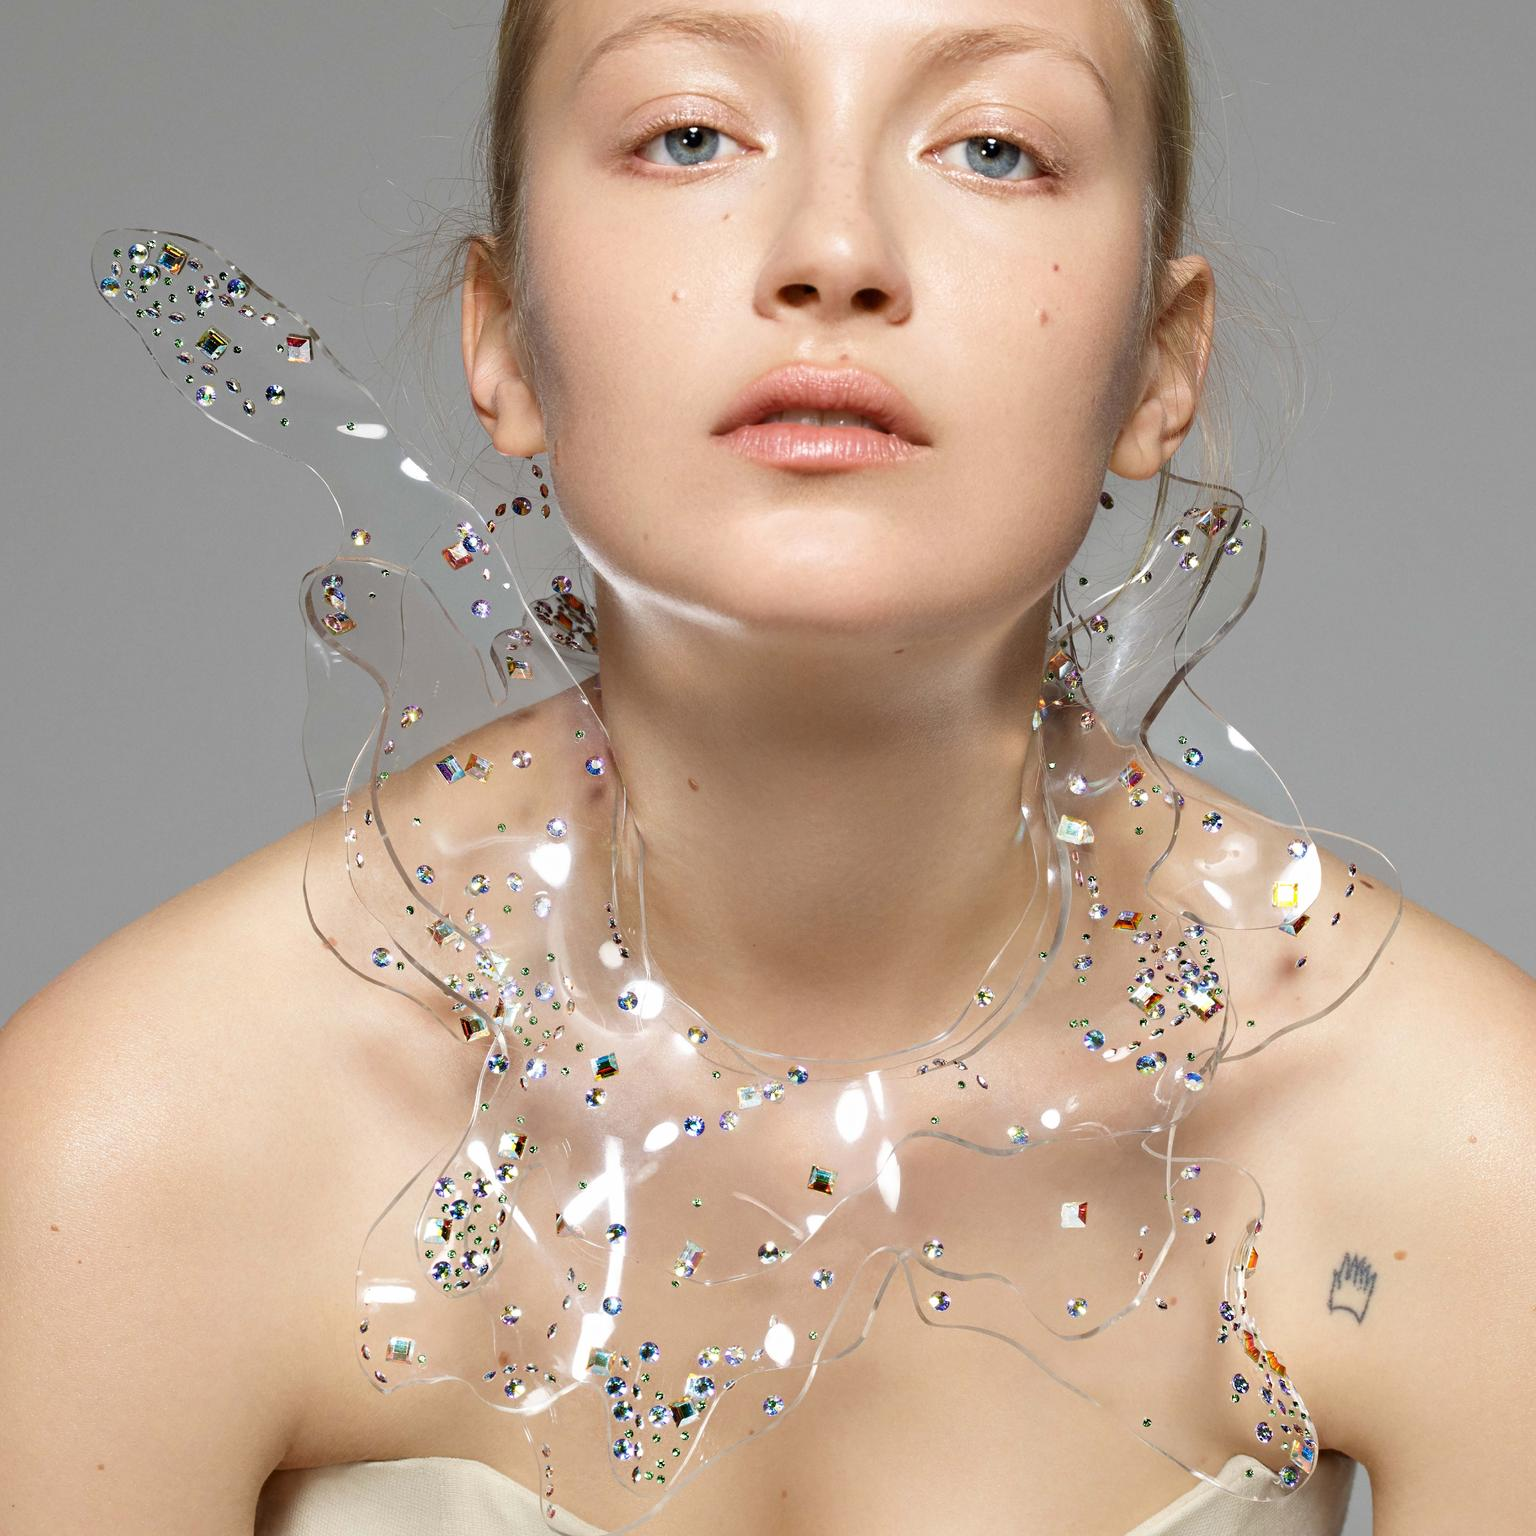 Piran Caseley Swarovski X CSM Dior competition entry